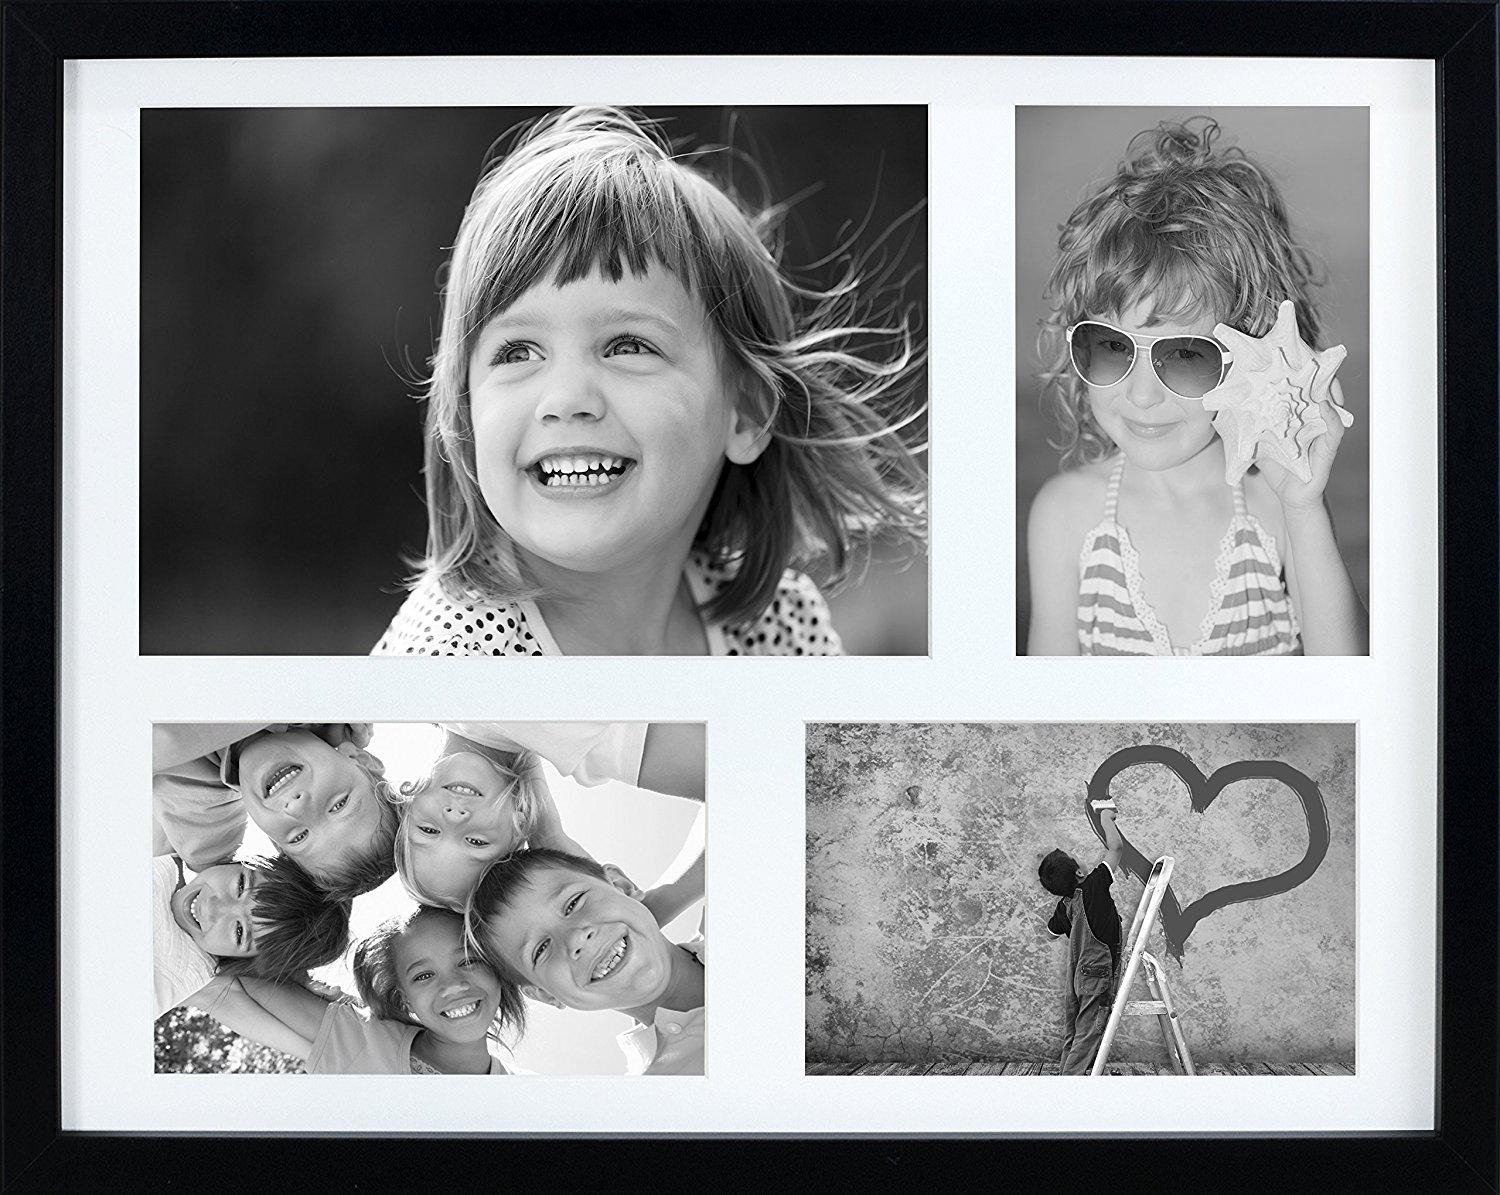 11 x 14-Inch Multi Aperture Picture Photo Frame with mount for 3 photos 4 x 6-Inch and 1 A5 photo size, BLACK